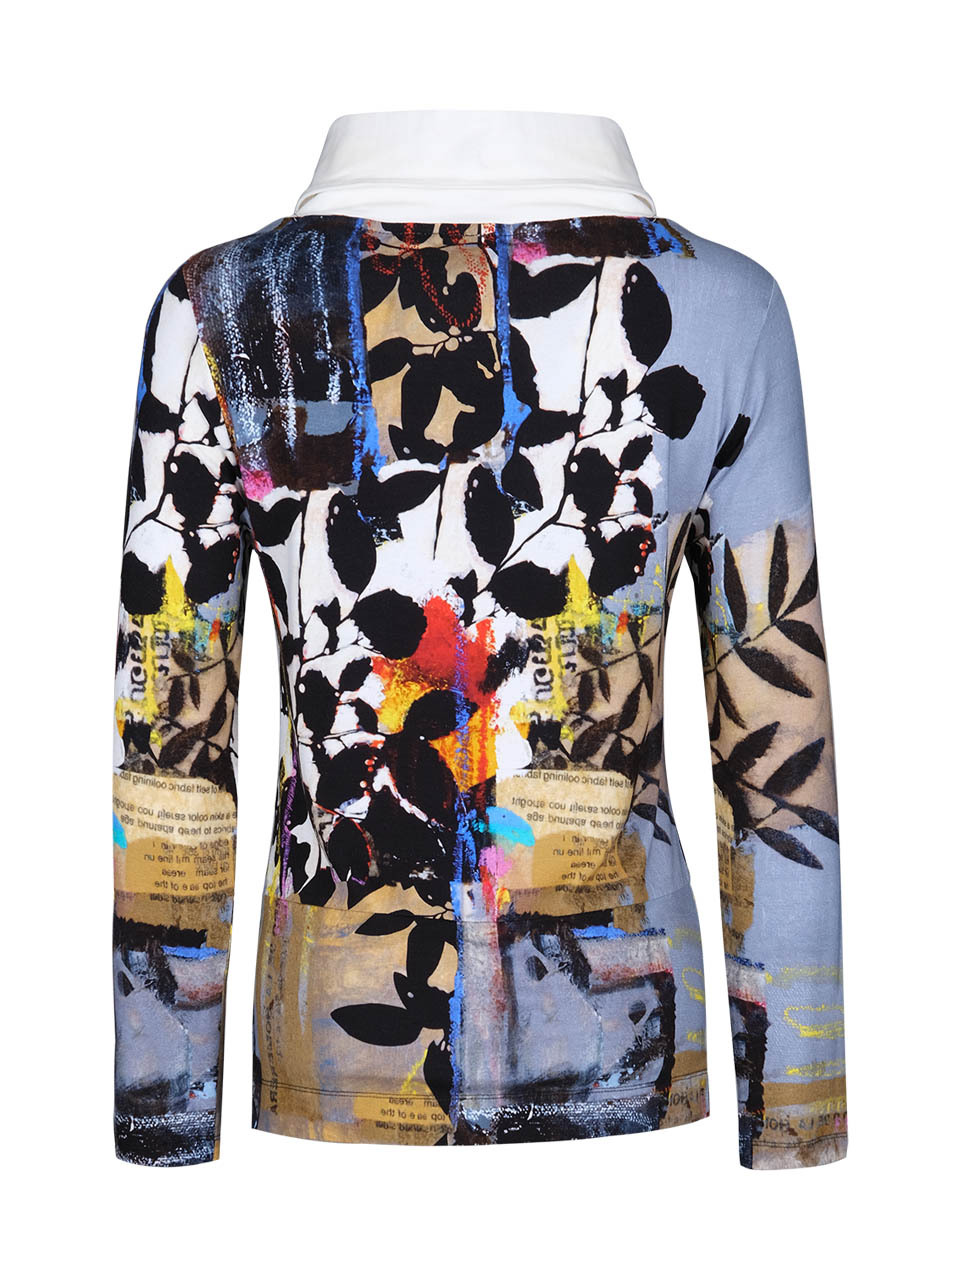 Simply Art Dolcezza: Split Cowl Neck Double OO Abstract Art Sweater Tunic (2 Left!)